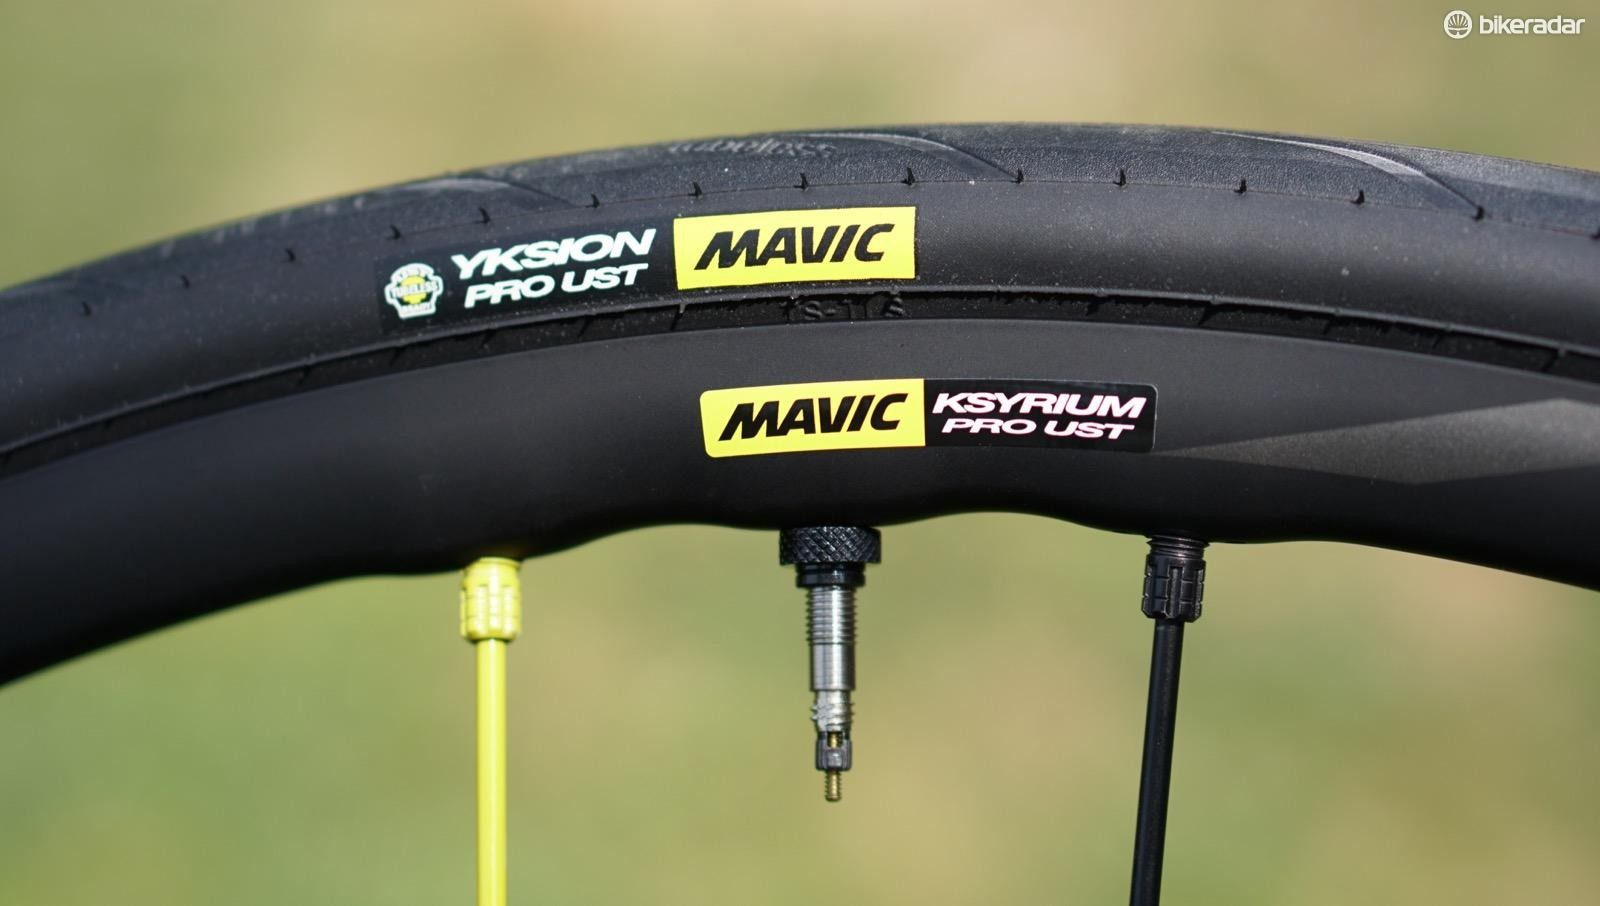 For now, Mavic has 25mm and 28mm Yksion Pro UST tires. More options are in the works